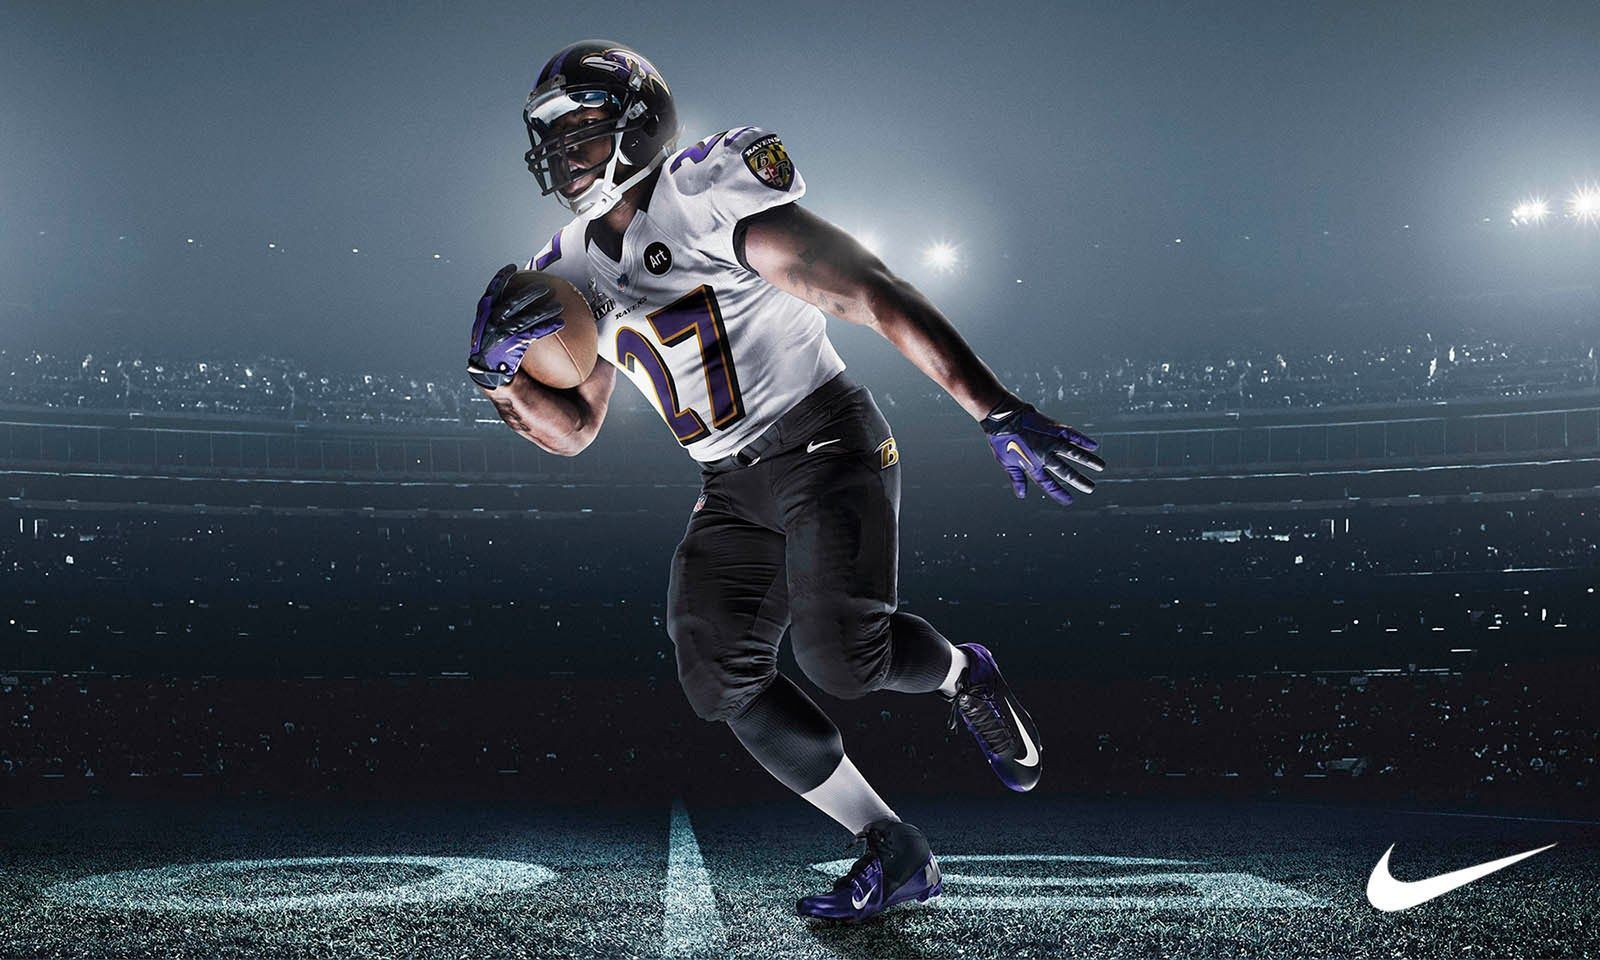 Nfl Football Players Wallpaper Android Informer Hd Nfl Wallpapers Free Wallpaper Download 1600x960